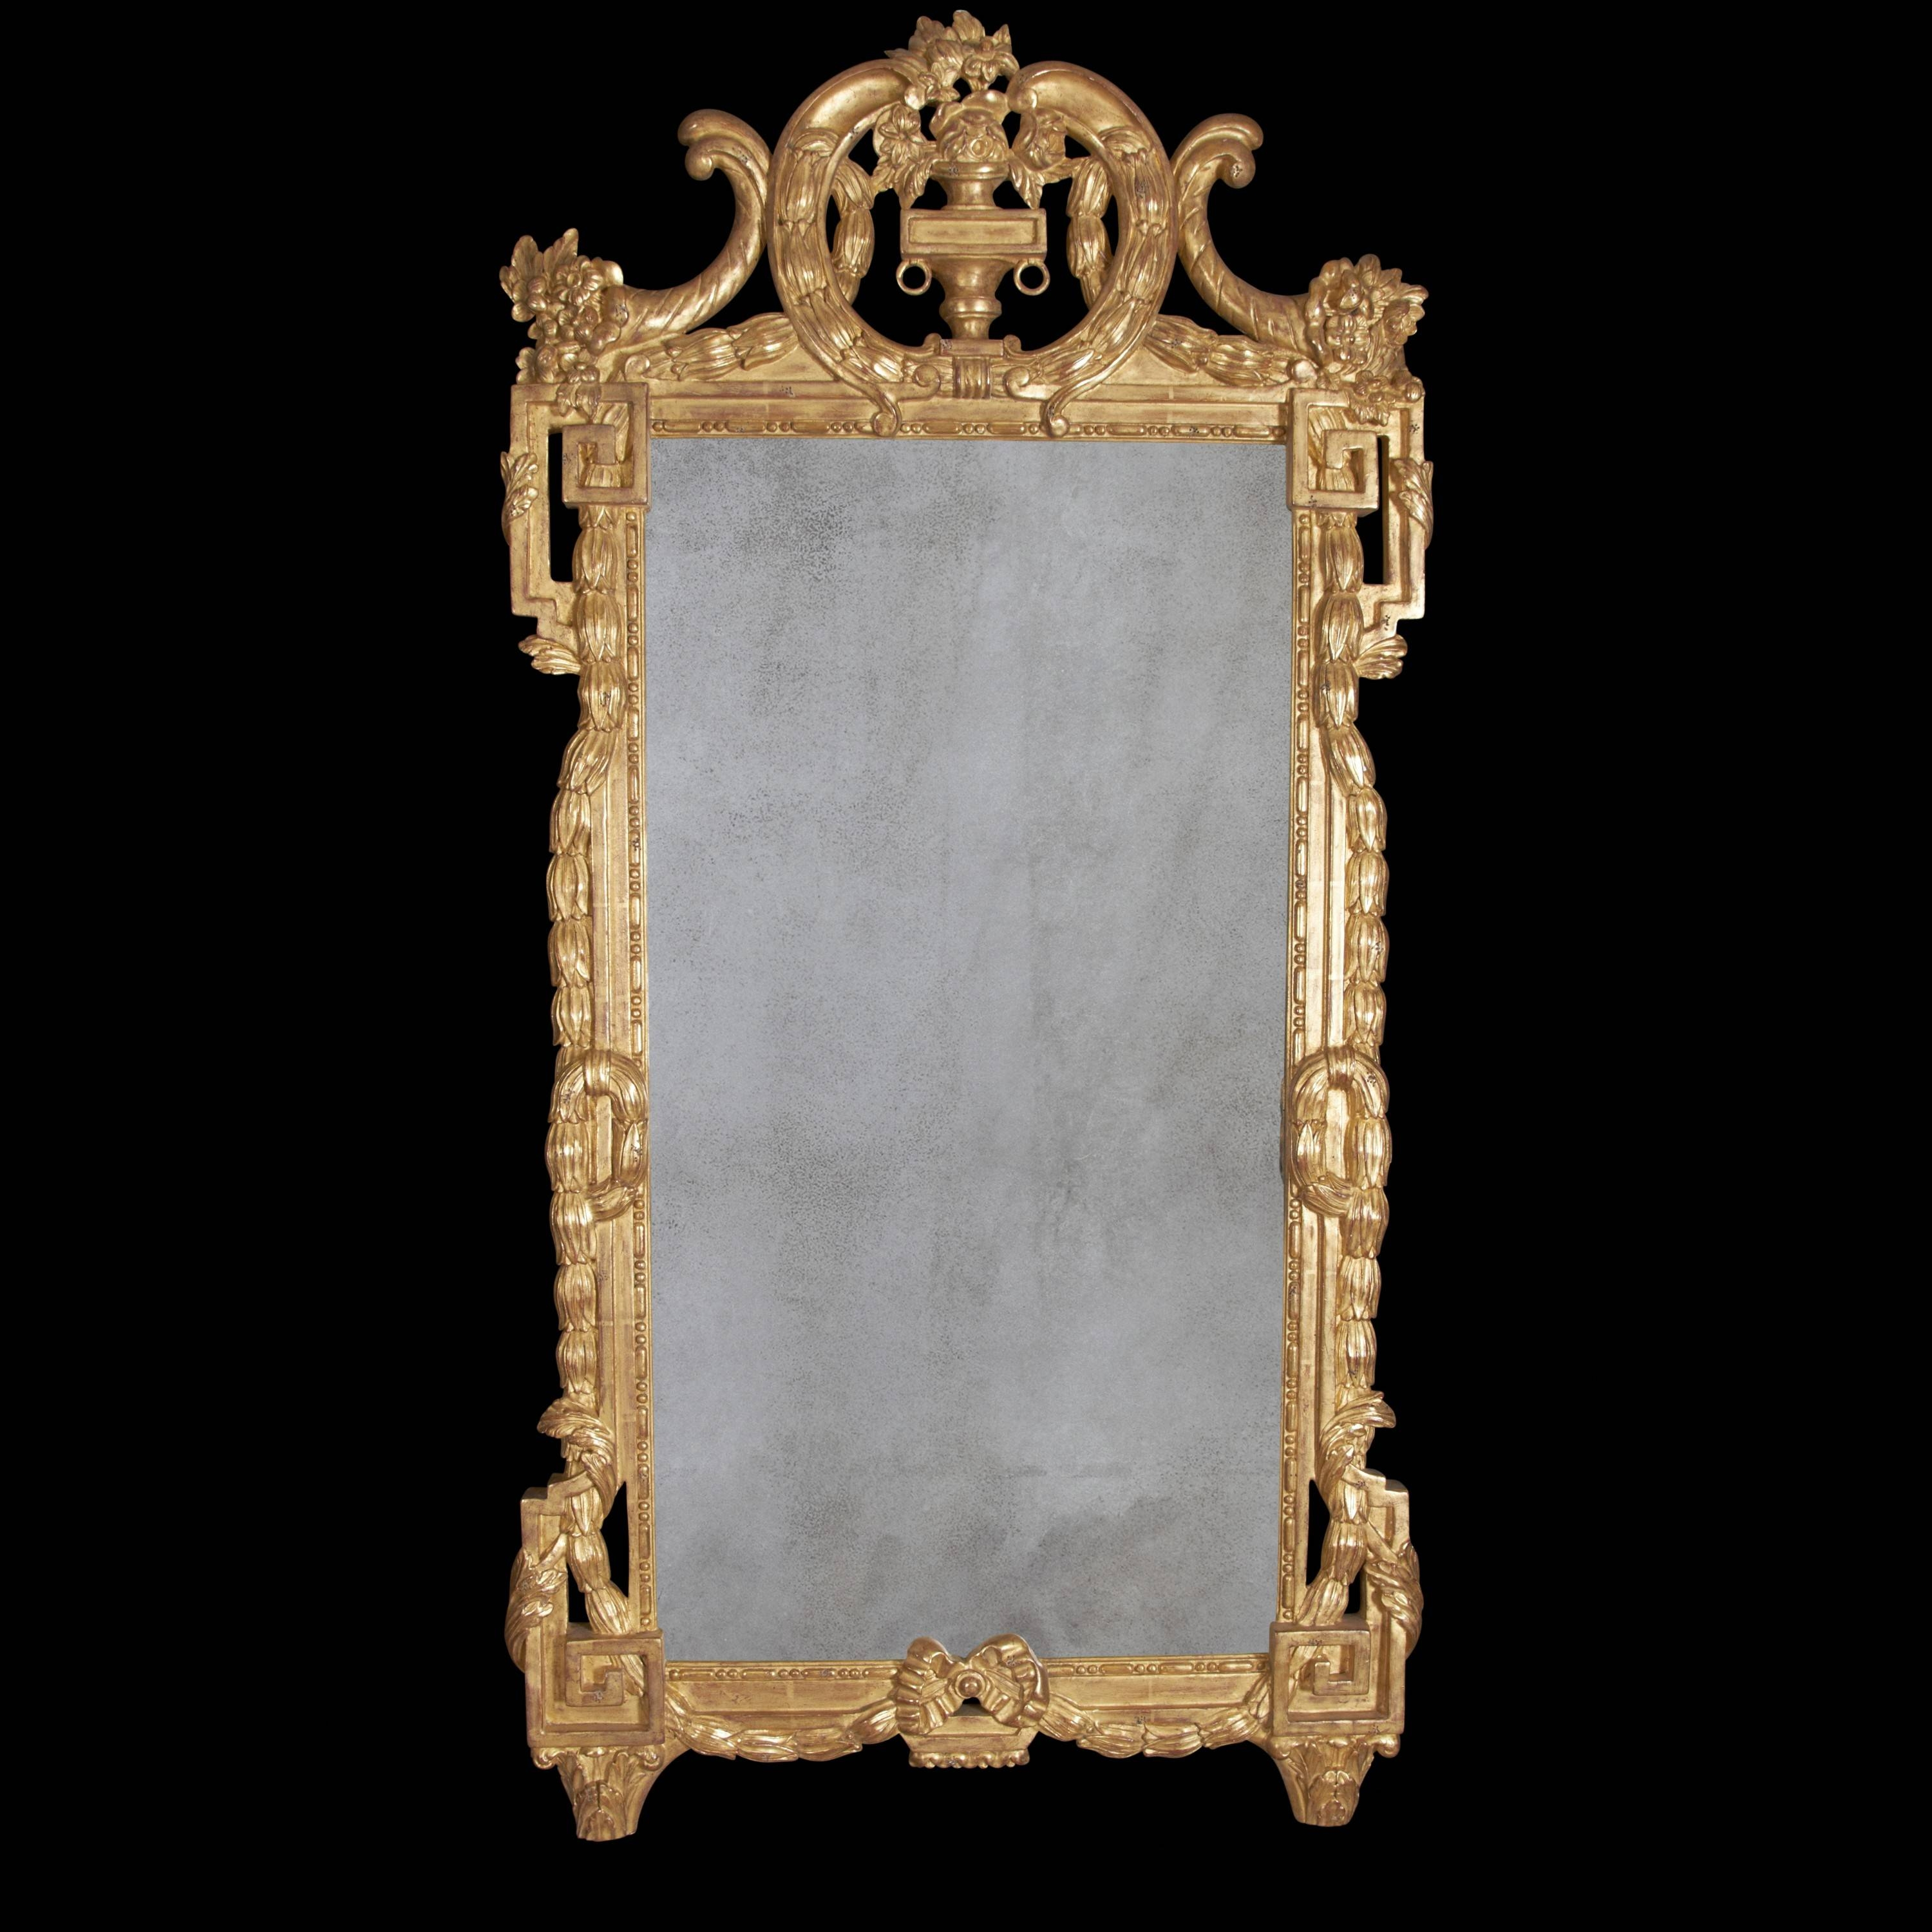 Antique Mirrors ~ Peeinn pertaining to Antique Mirrors London (Image 12 of 25)